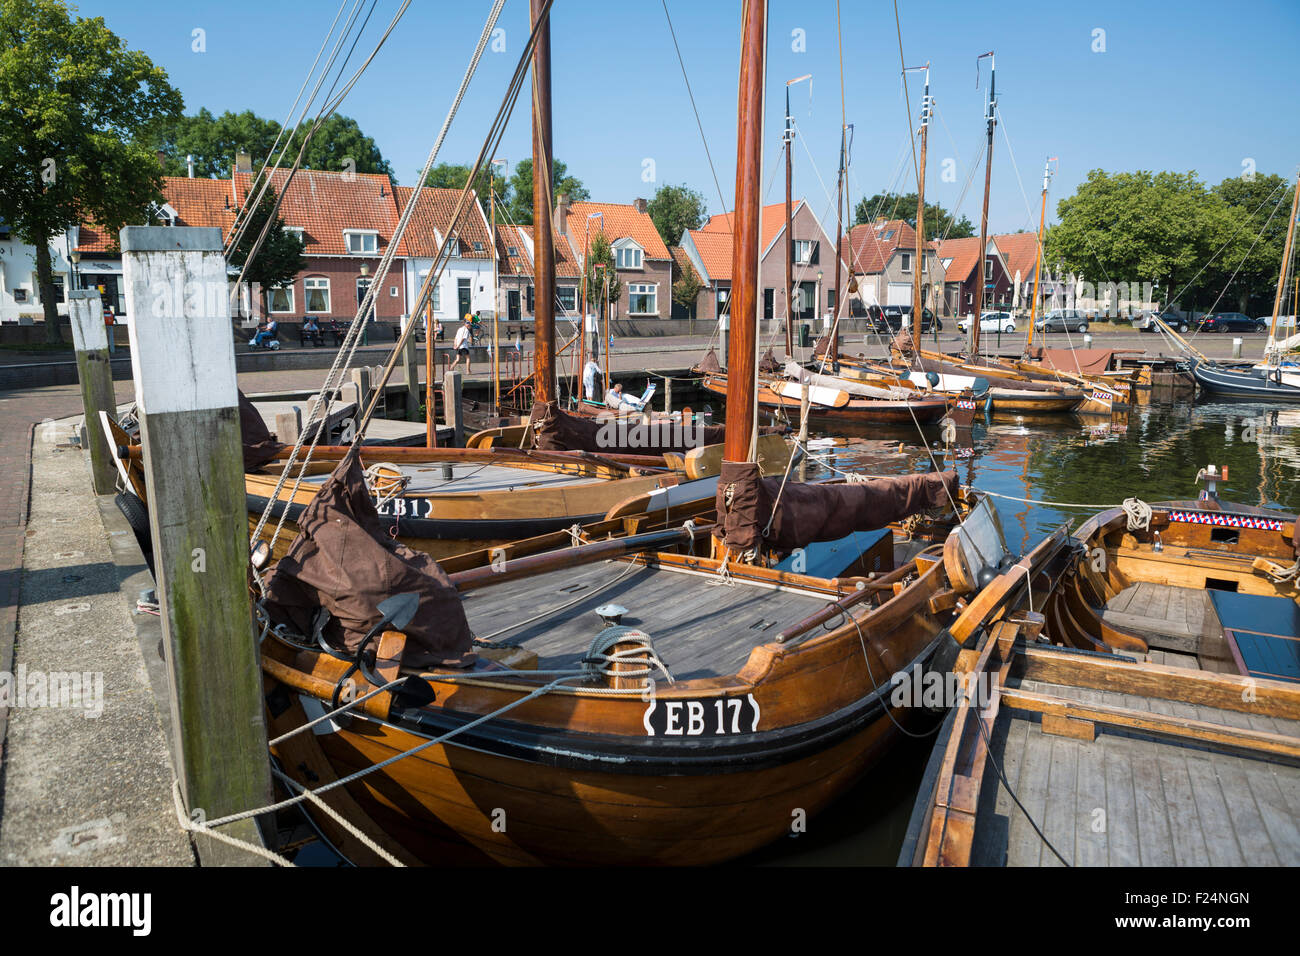 Historical fishing boats in the harbor of the hanseatic city Elburg in the Netherlands - Stock Image